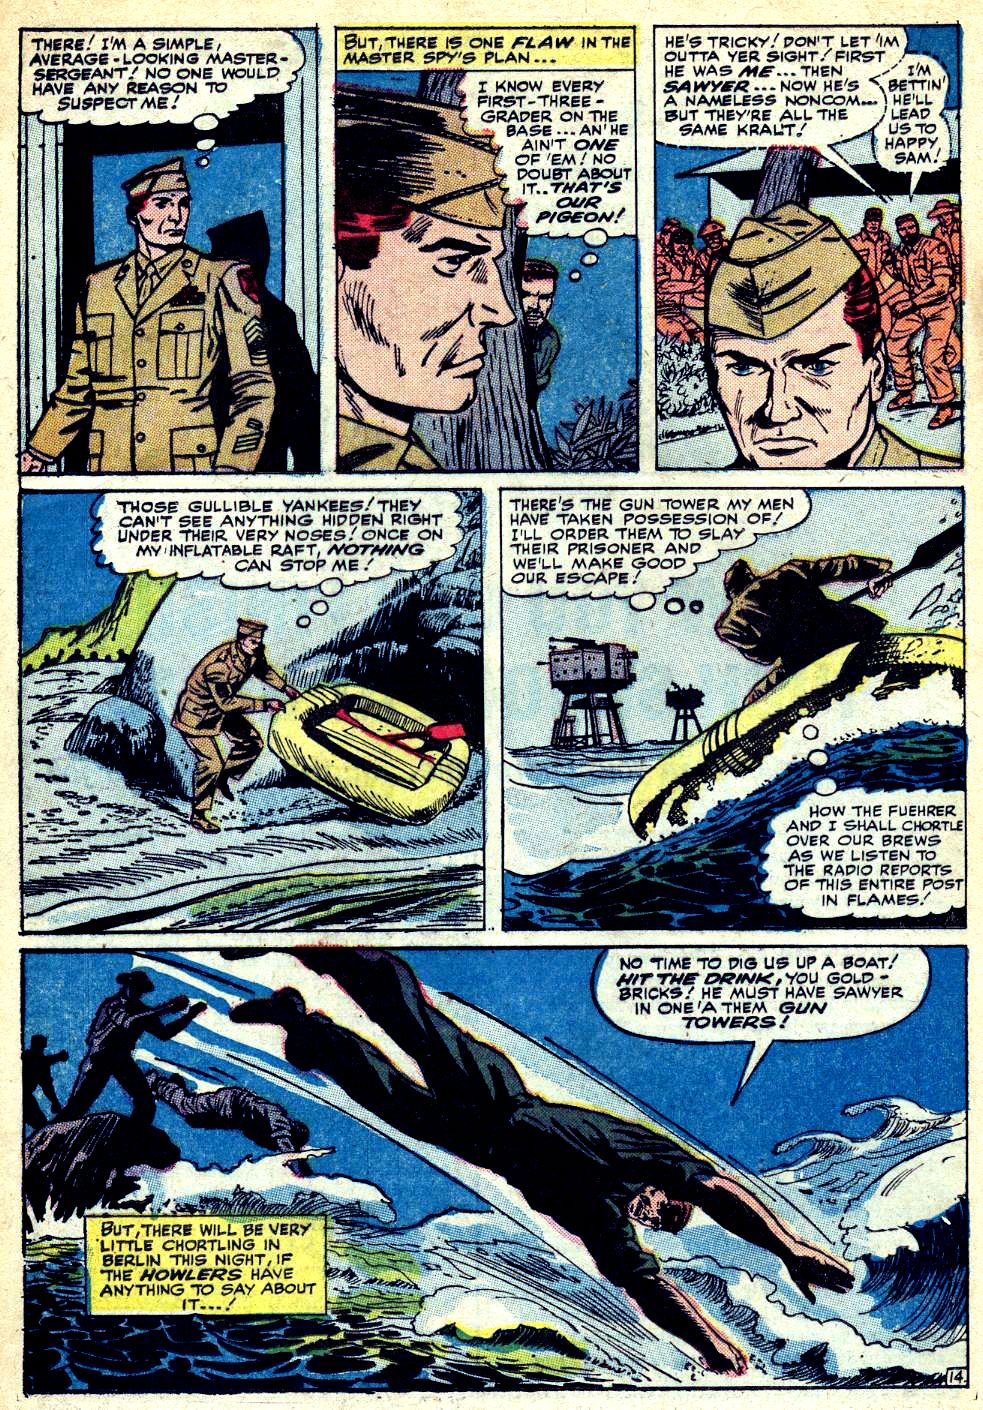 Read online Sgt. Fury comic -  Issue #25 - 20